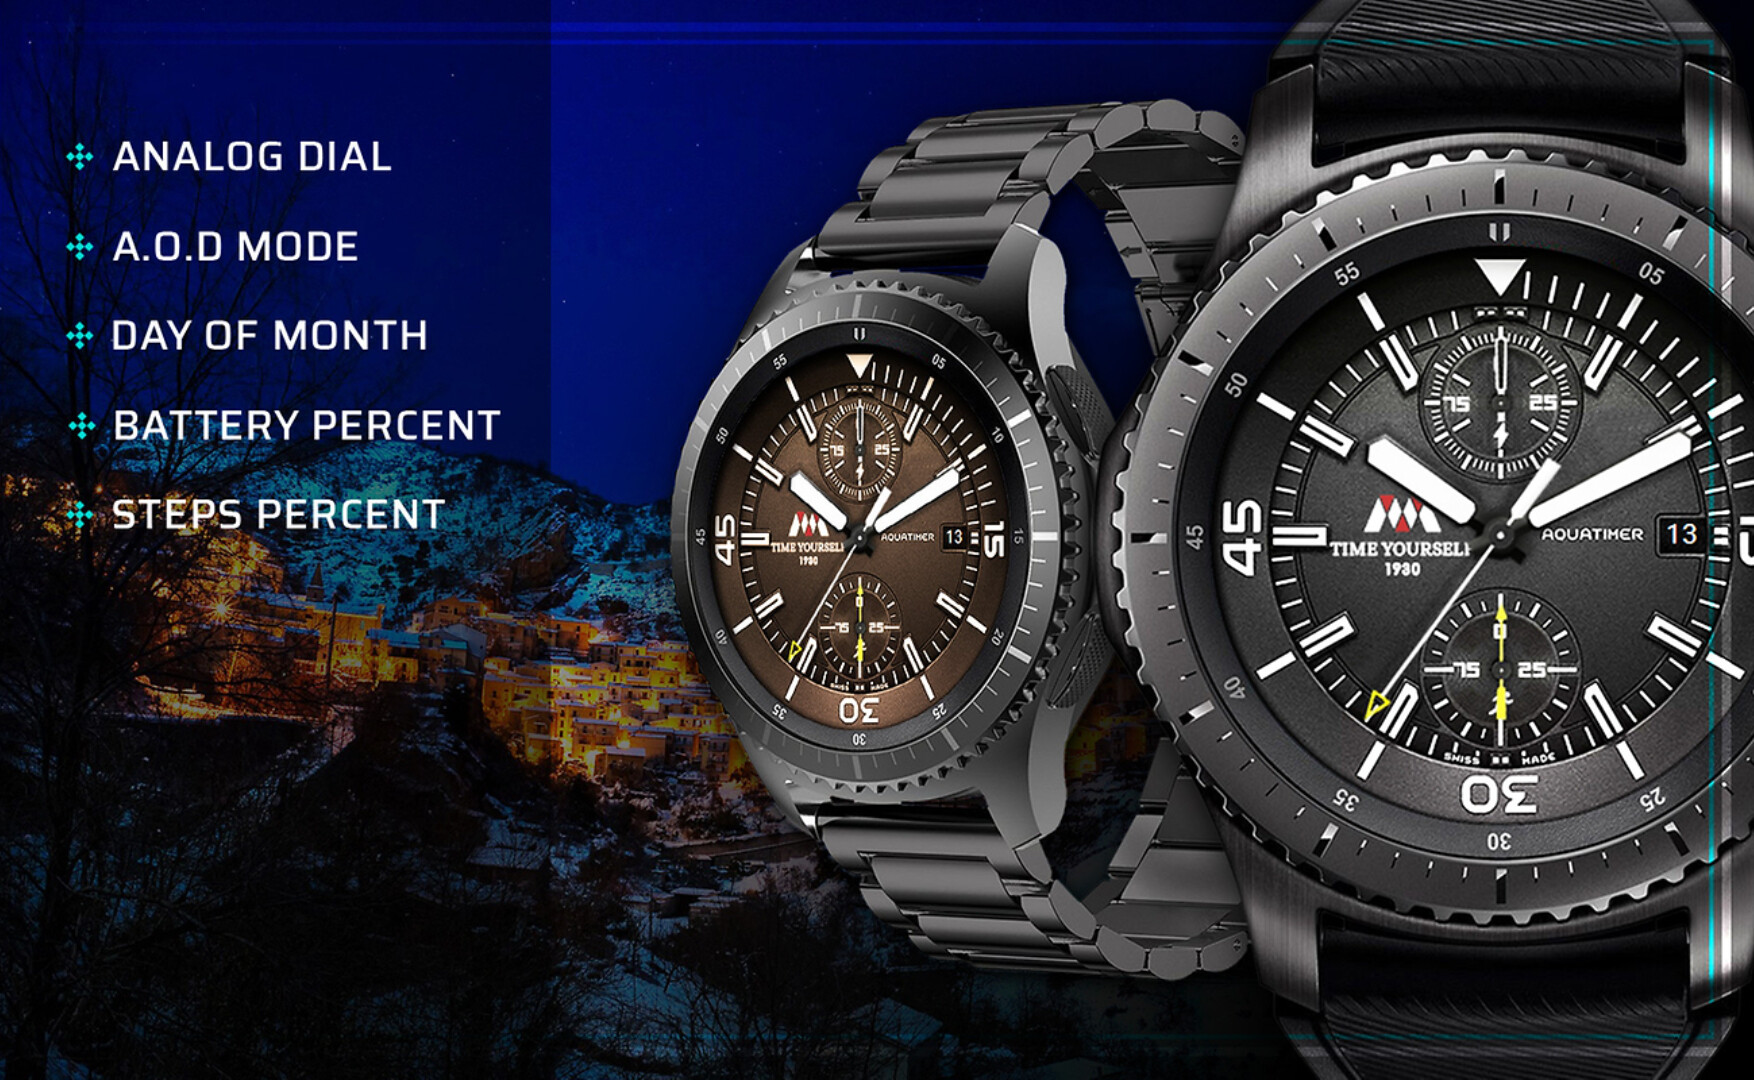 Best Gear S3 Watch Faces 2019 Check out these watchfaces for your Gear Sport, Gear S3, or Gear